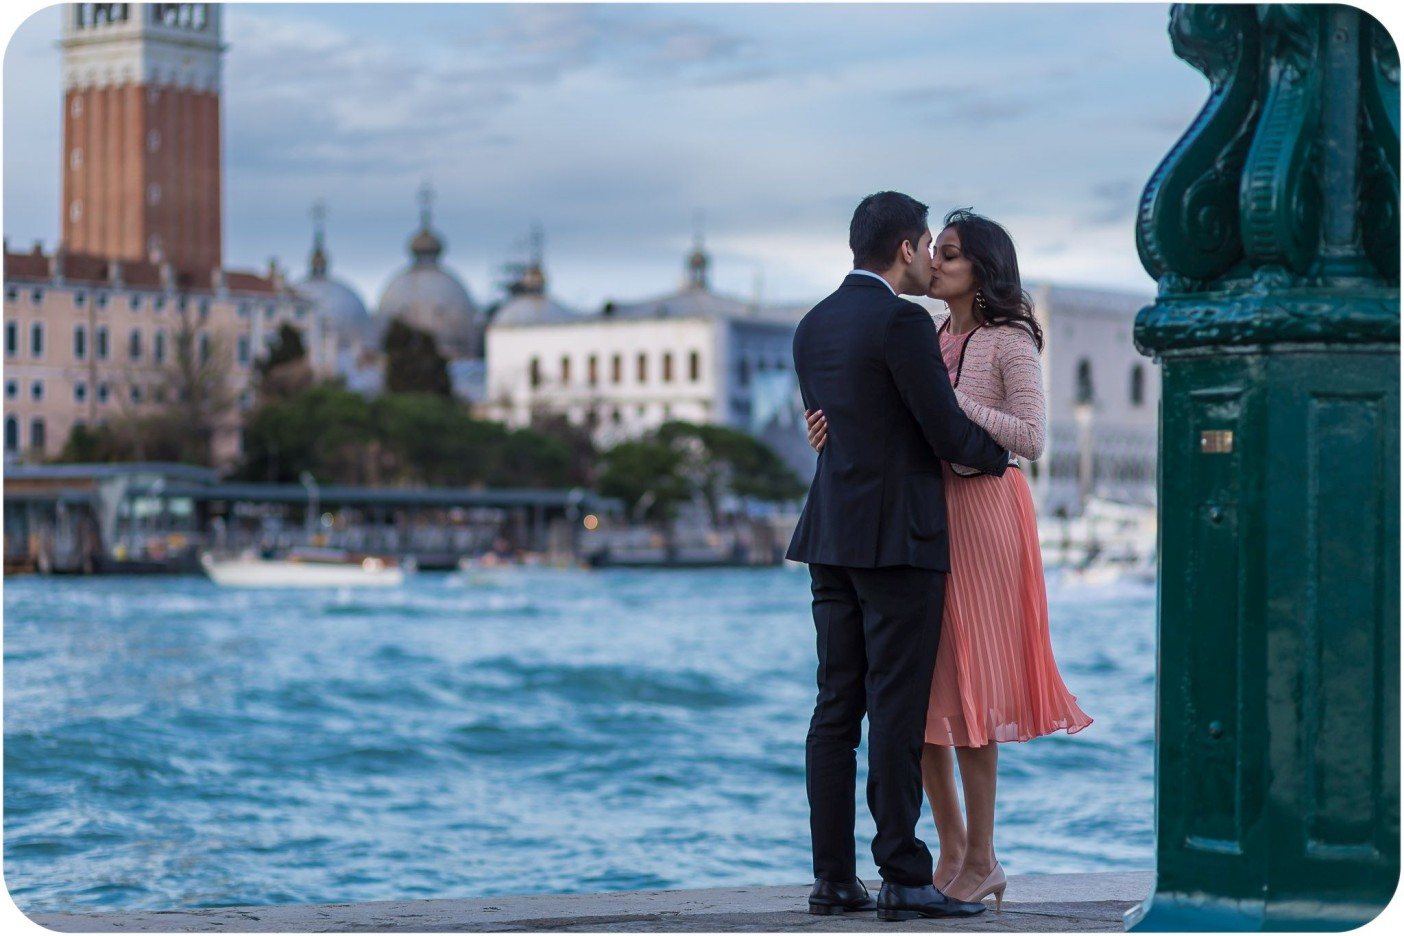 couple kiss in front of lagoon during engagement photo session in Venice